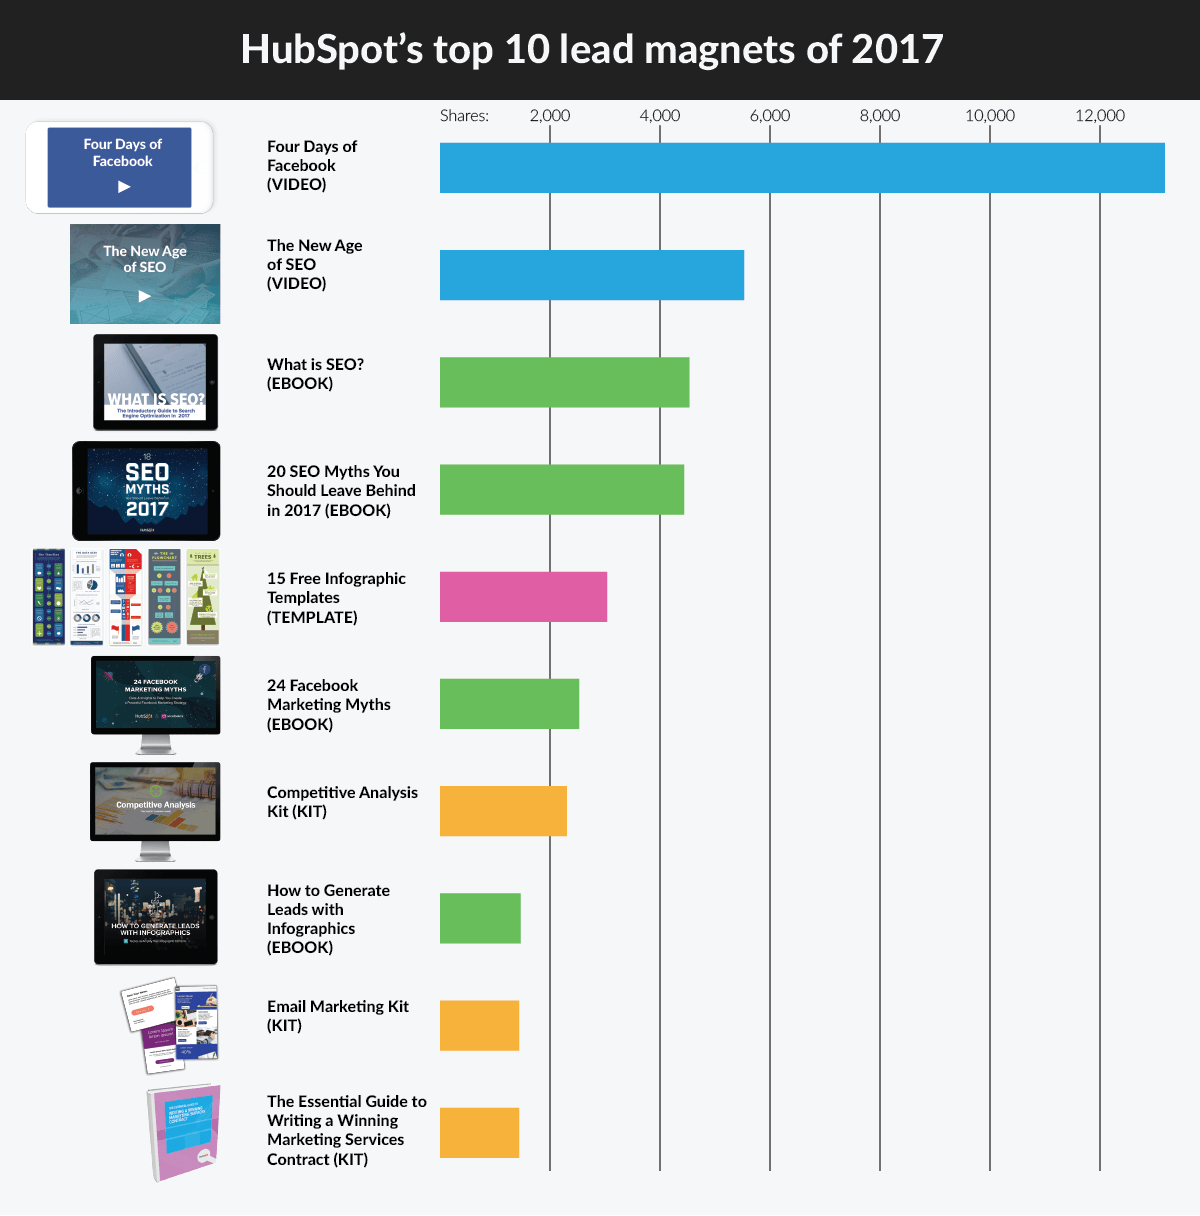 HubSpot's top 10 lead magnets